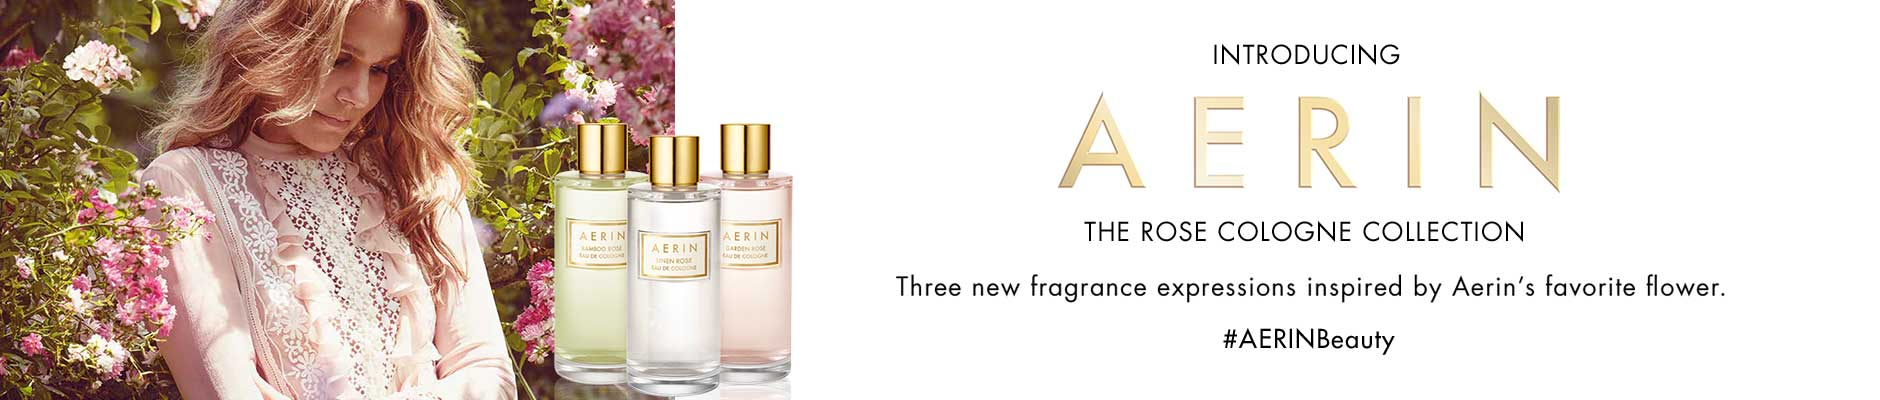 Introducing Aerin - the rose cologne collection, three new fragrance expressions inspired by aerin's favorite flower. #AERINBeauty